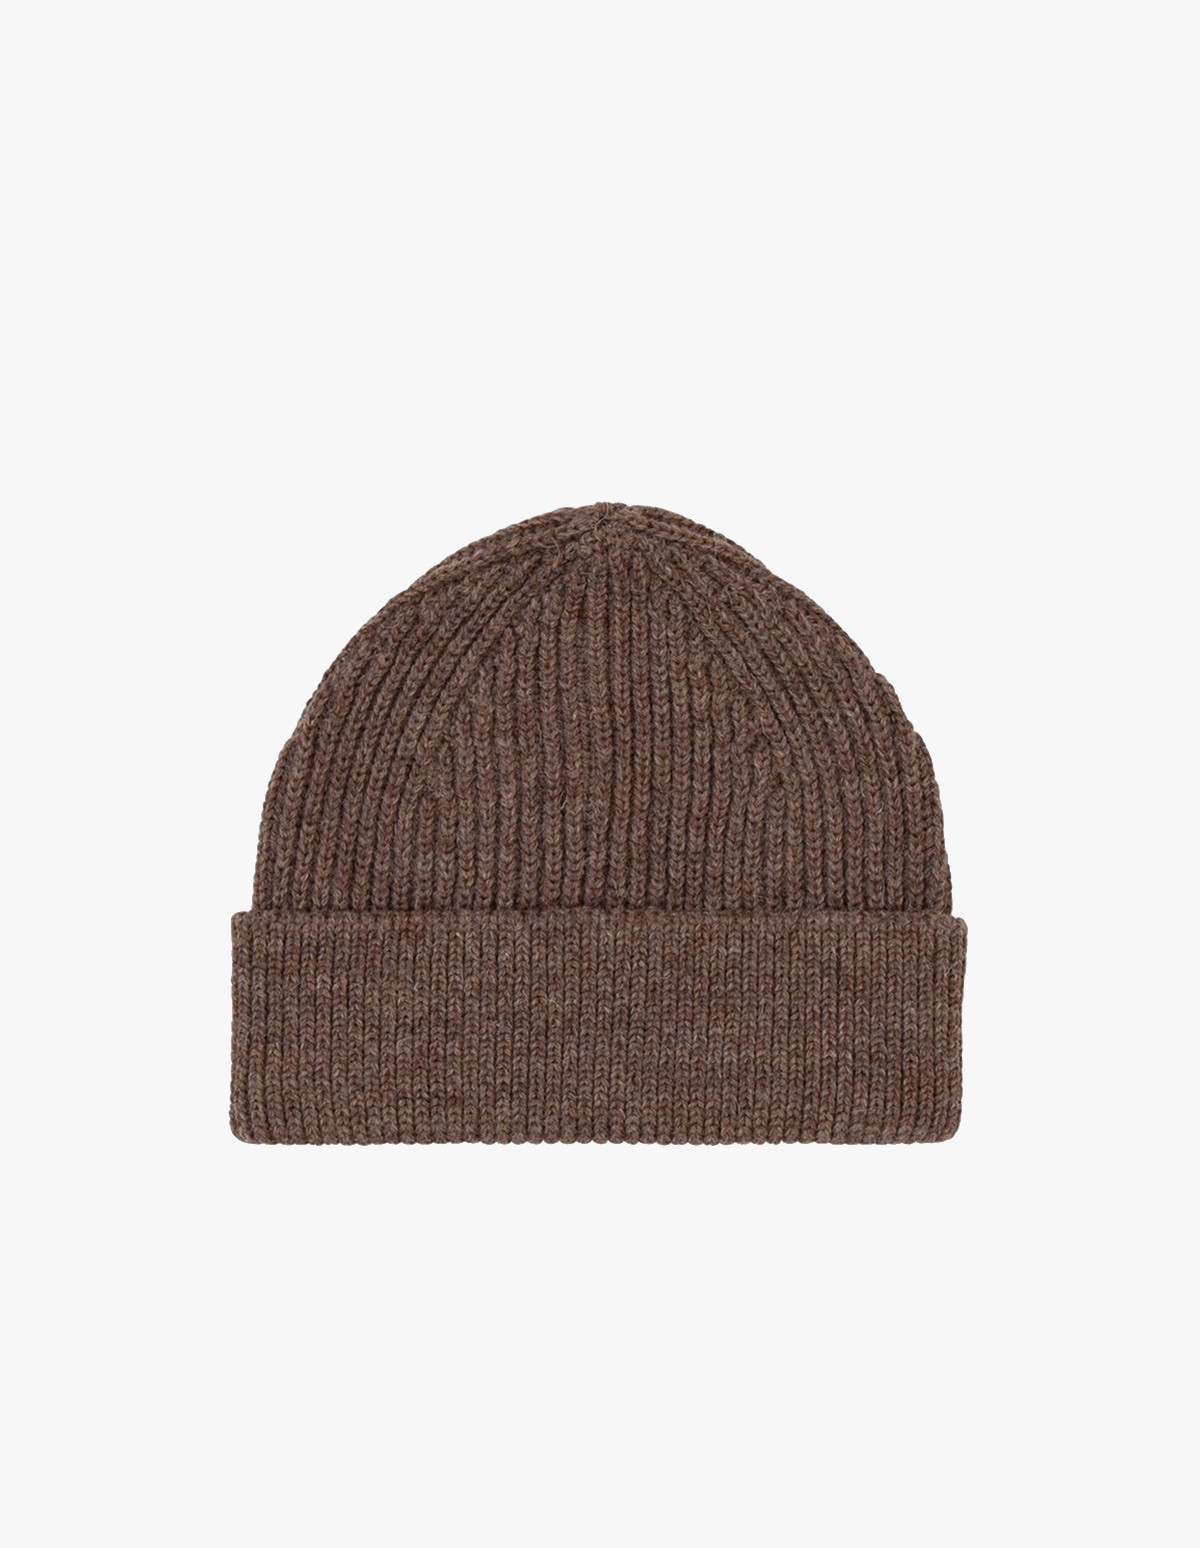 Andersen-Andersen Beanie Short  in Natural Taupe